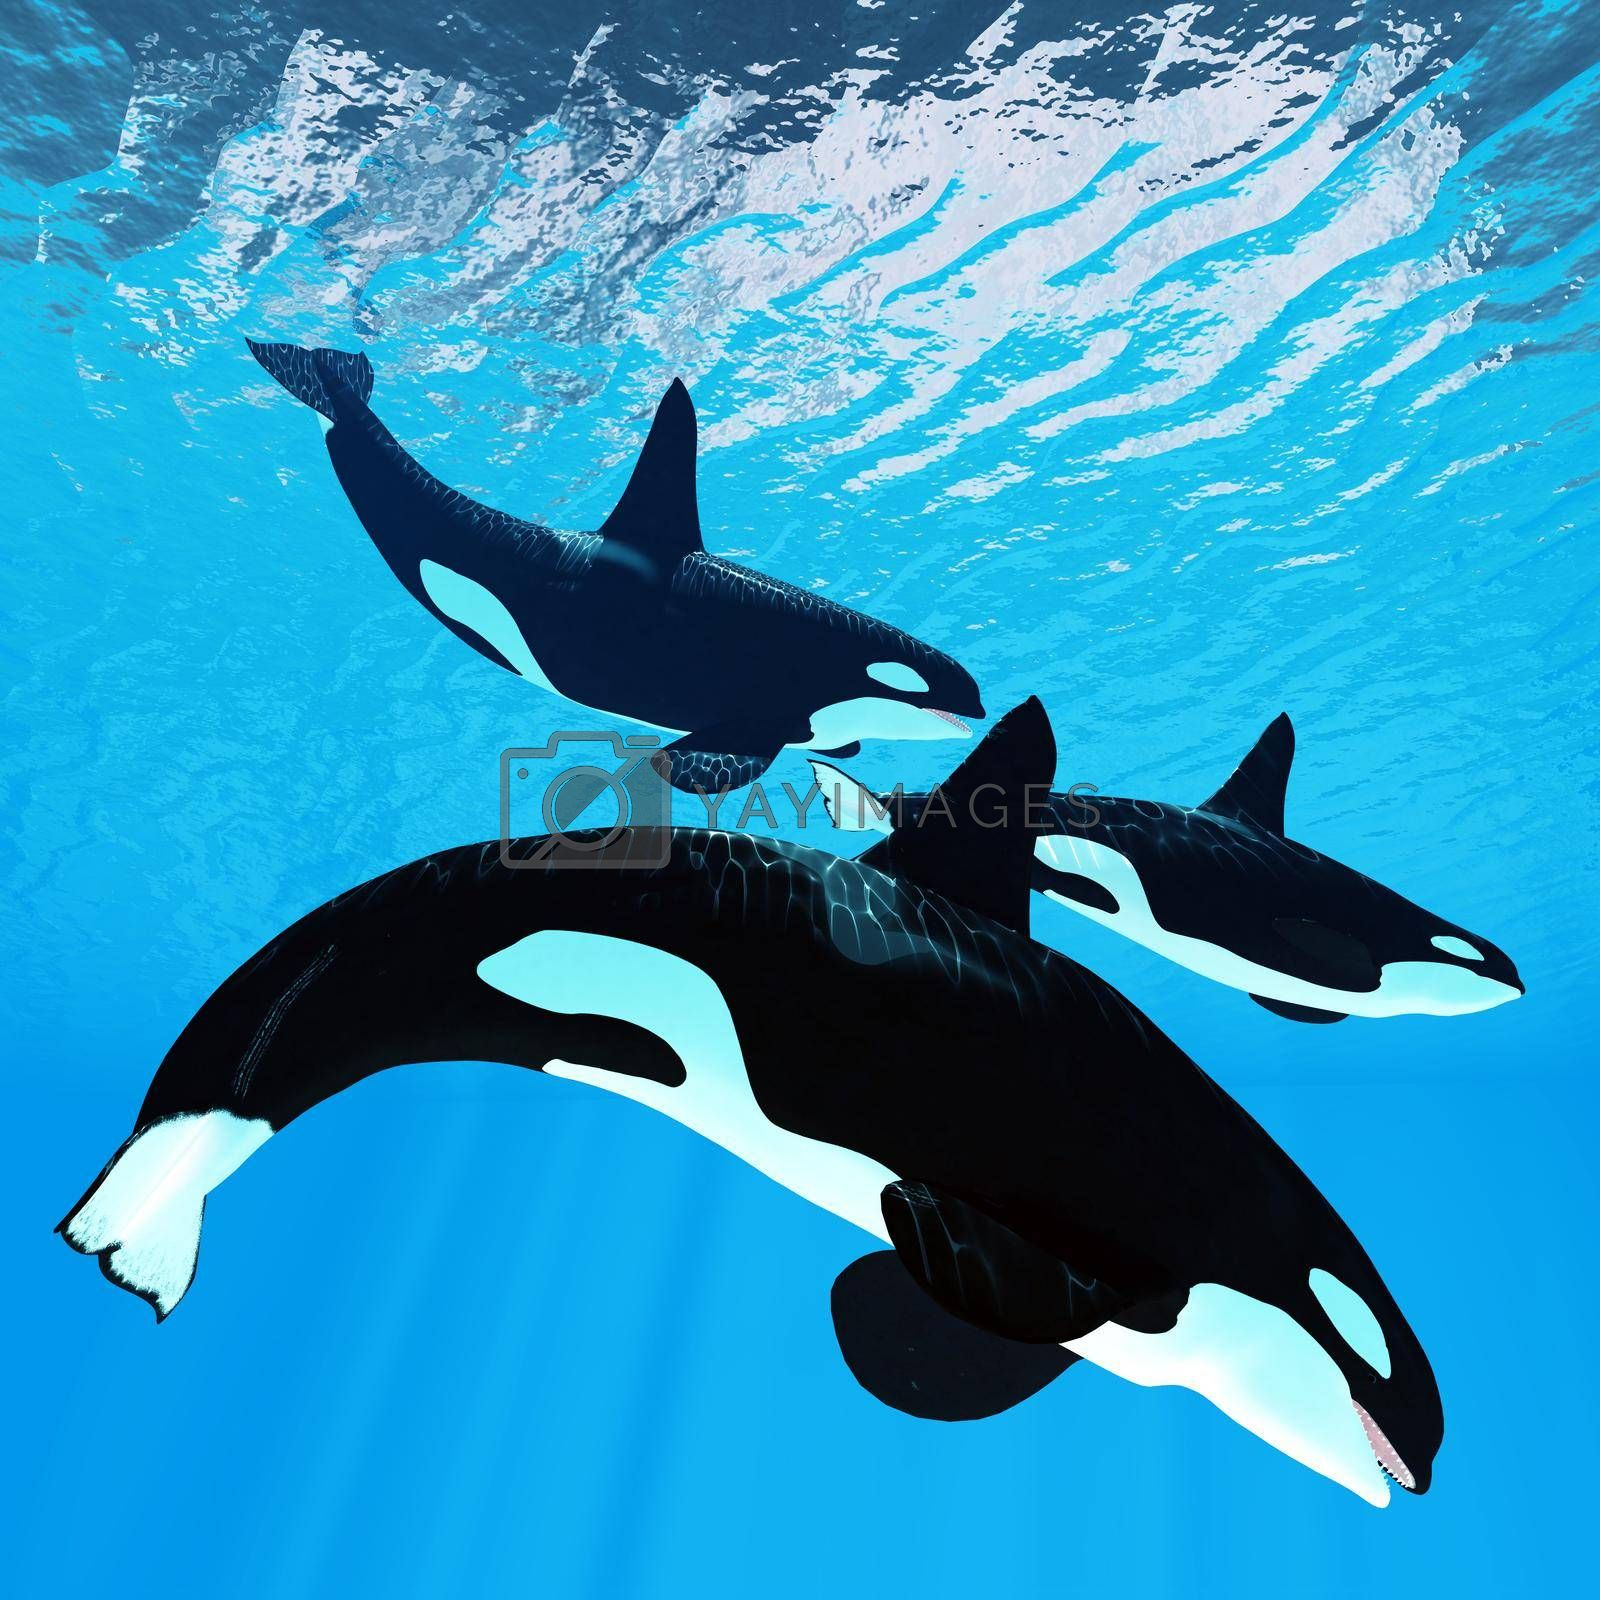 Three male bull Orca whales swim together near the surface of the ocean waves.